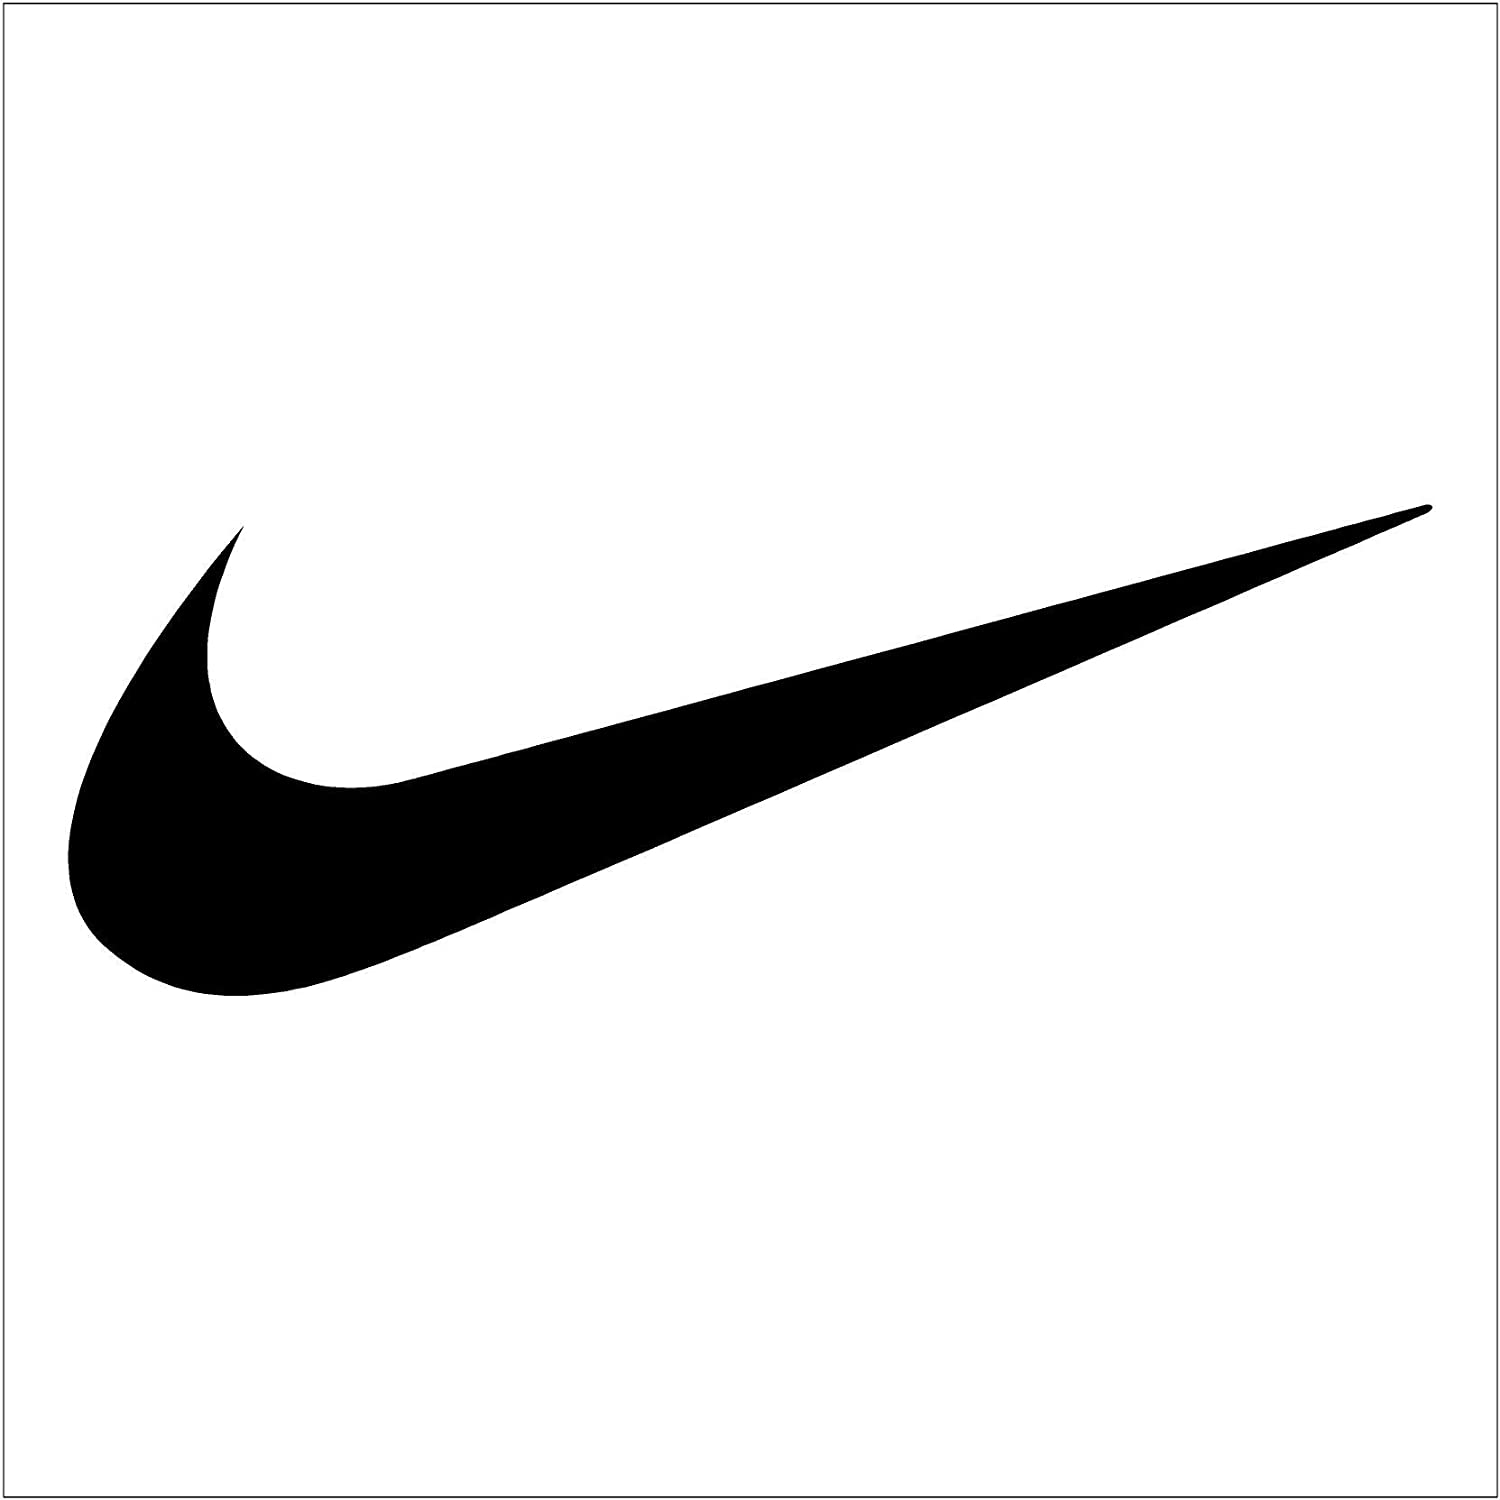 2904dafdb337 Amazon.com  Crawford Graphix Nike Swoosh Logo Vinyl Sticker 2 Pack (6